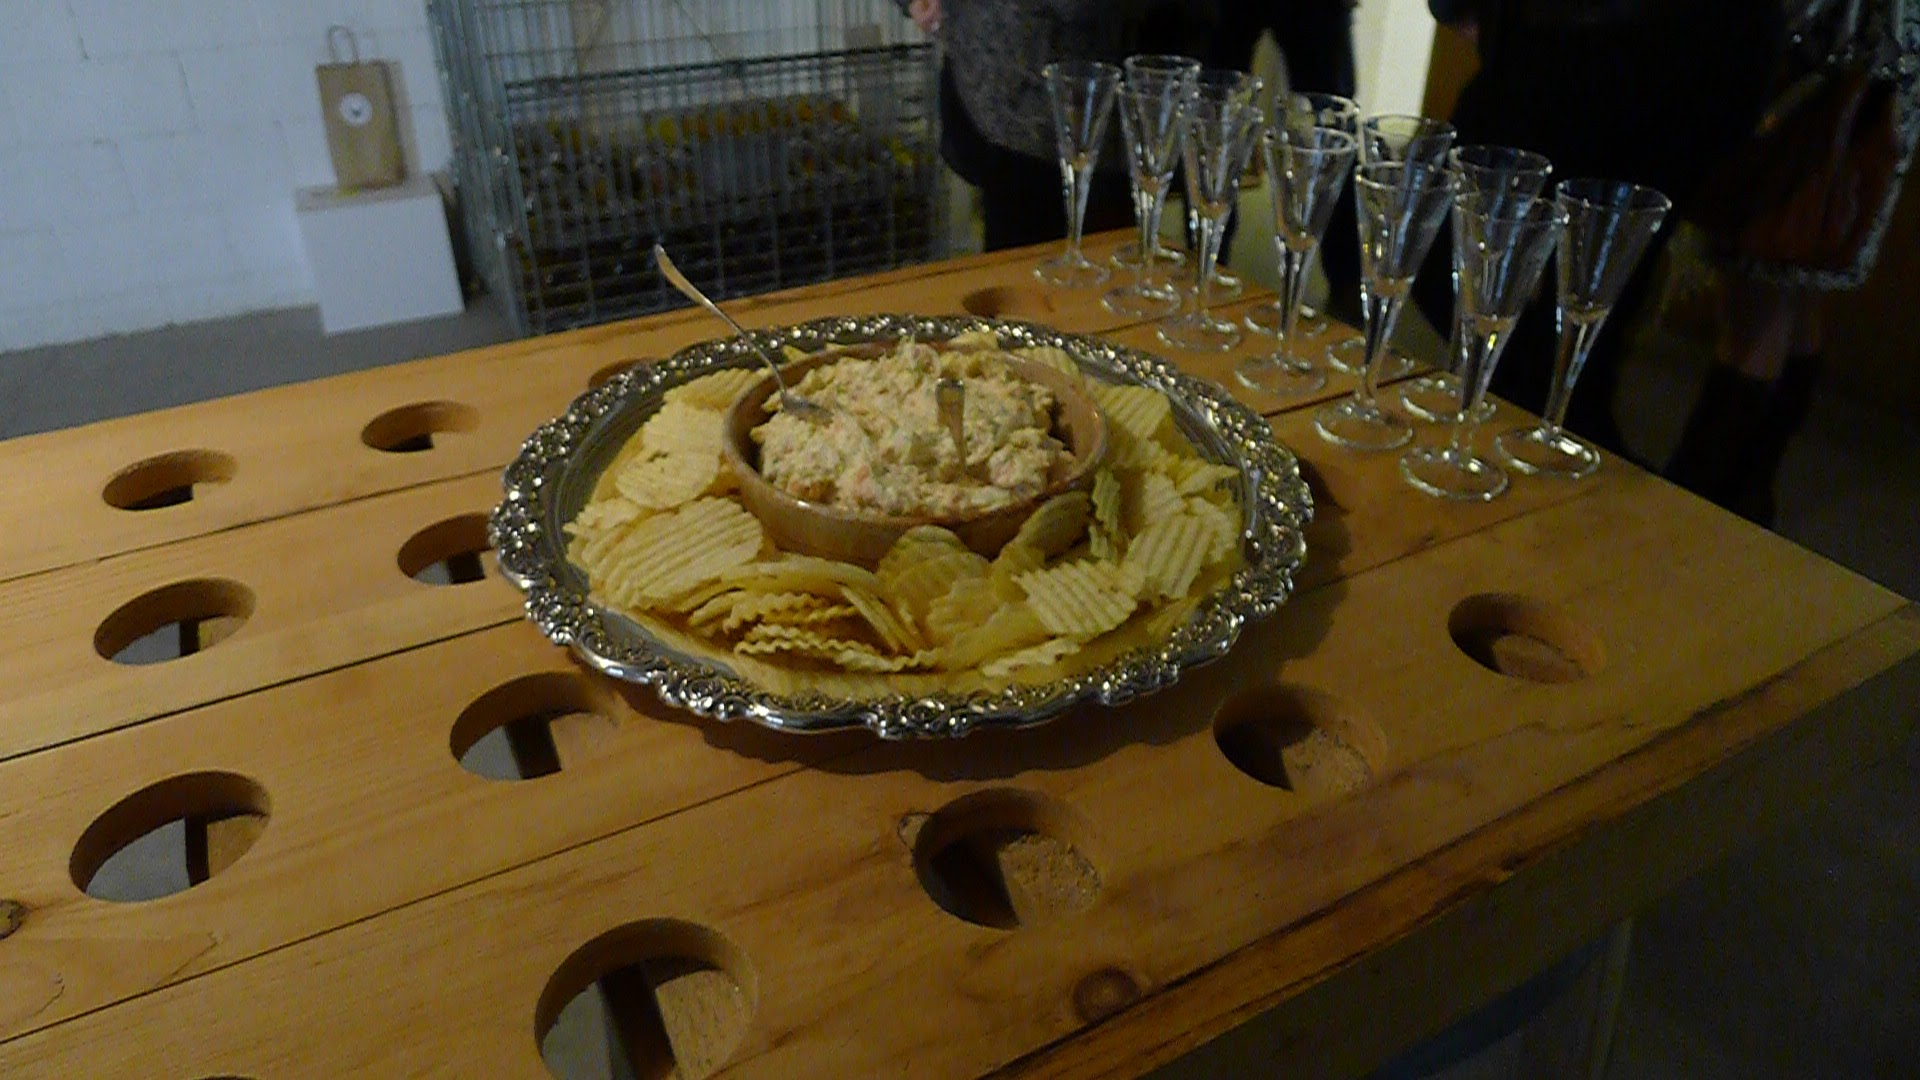 Smoked Trout Rillette, something that worked incredibly well with a glassful of bubbles from Hinterland's range.